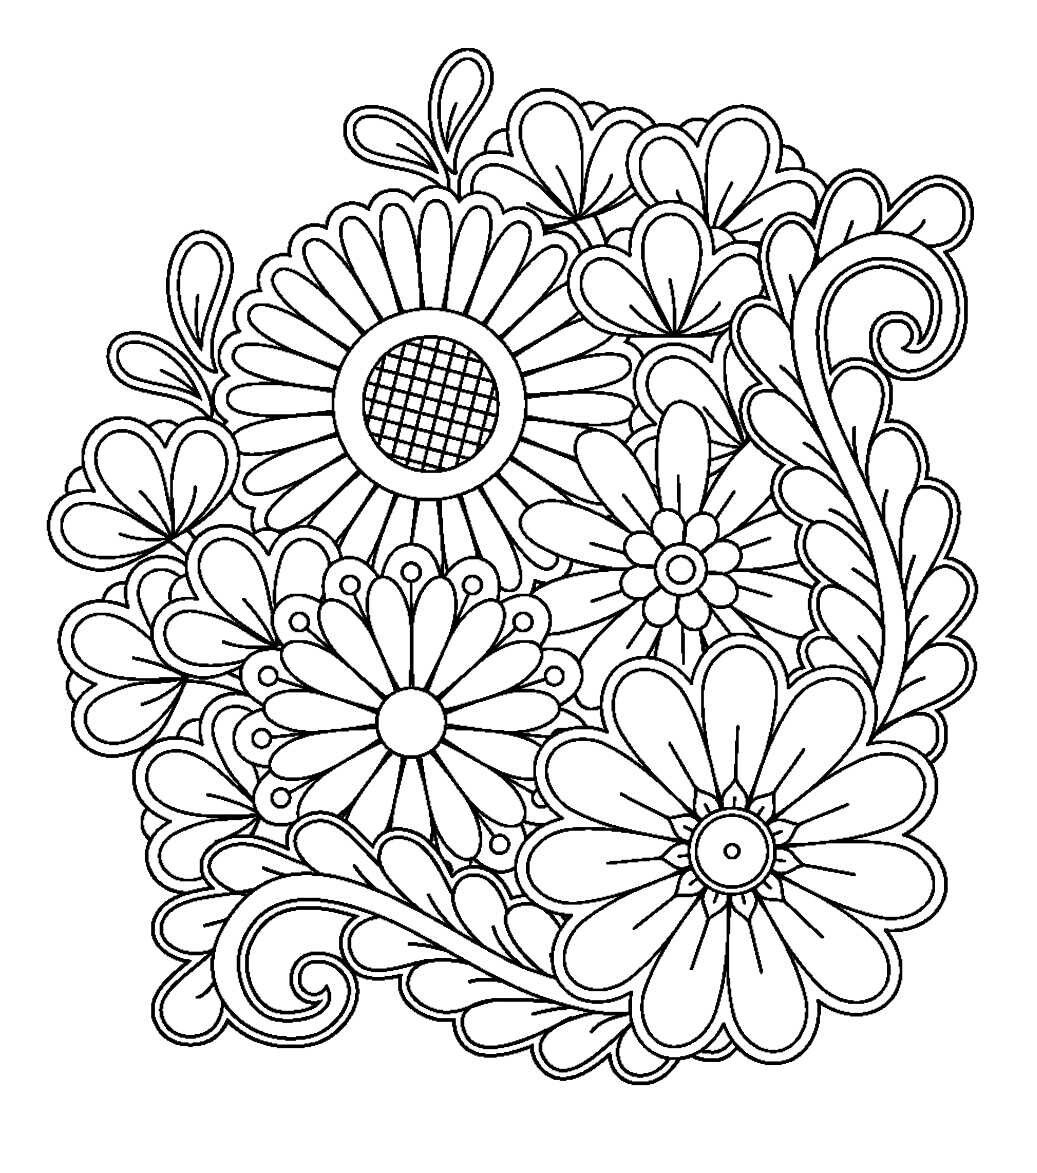 Flower Design for Zentangle Inspiration | Coloring pages ...